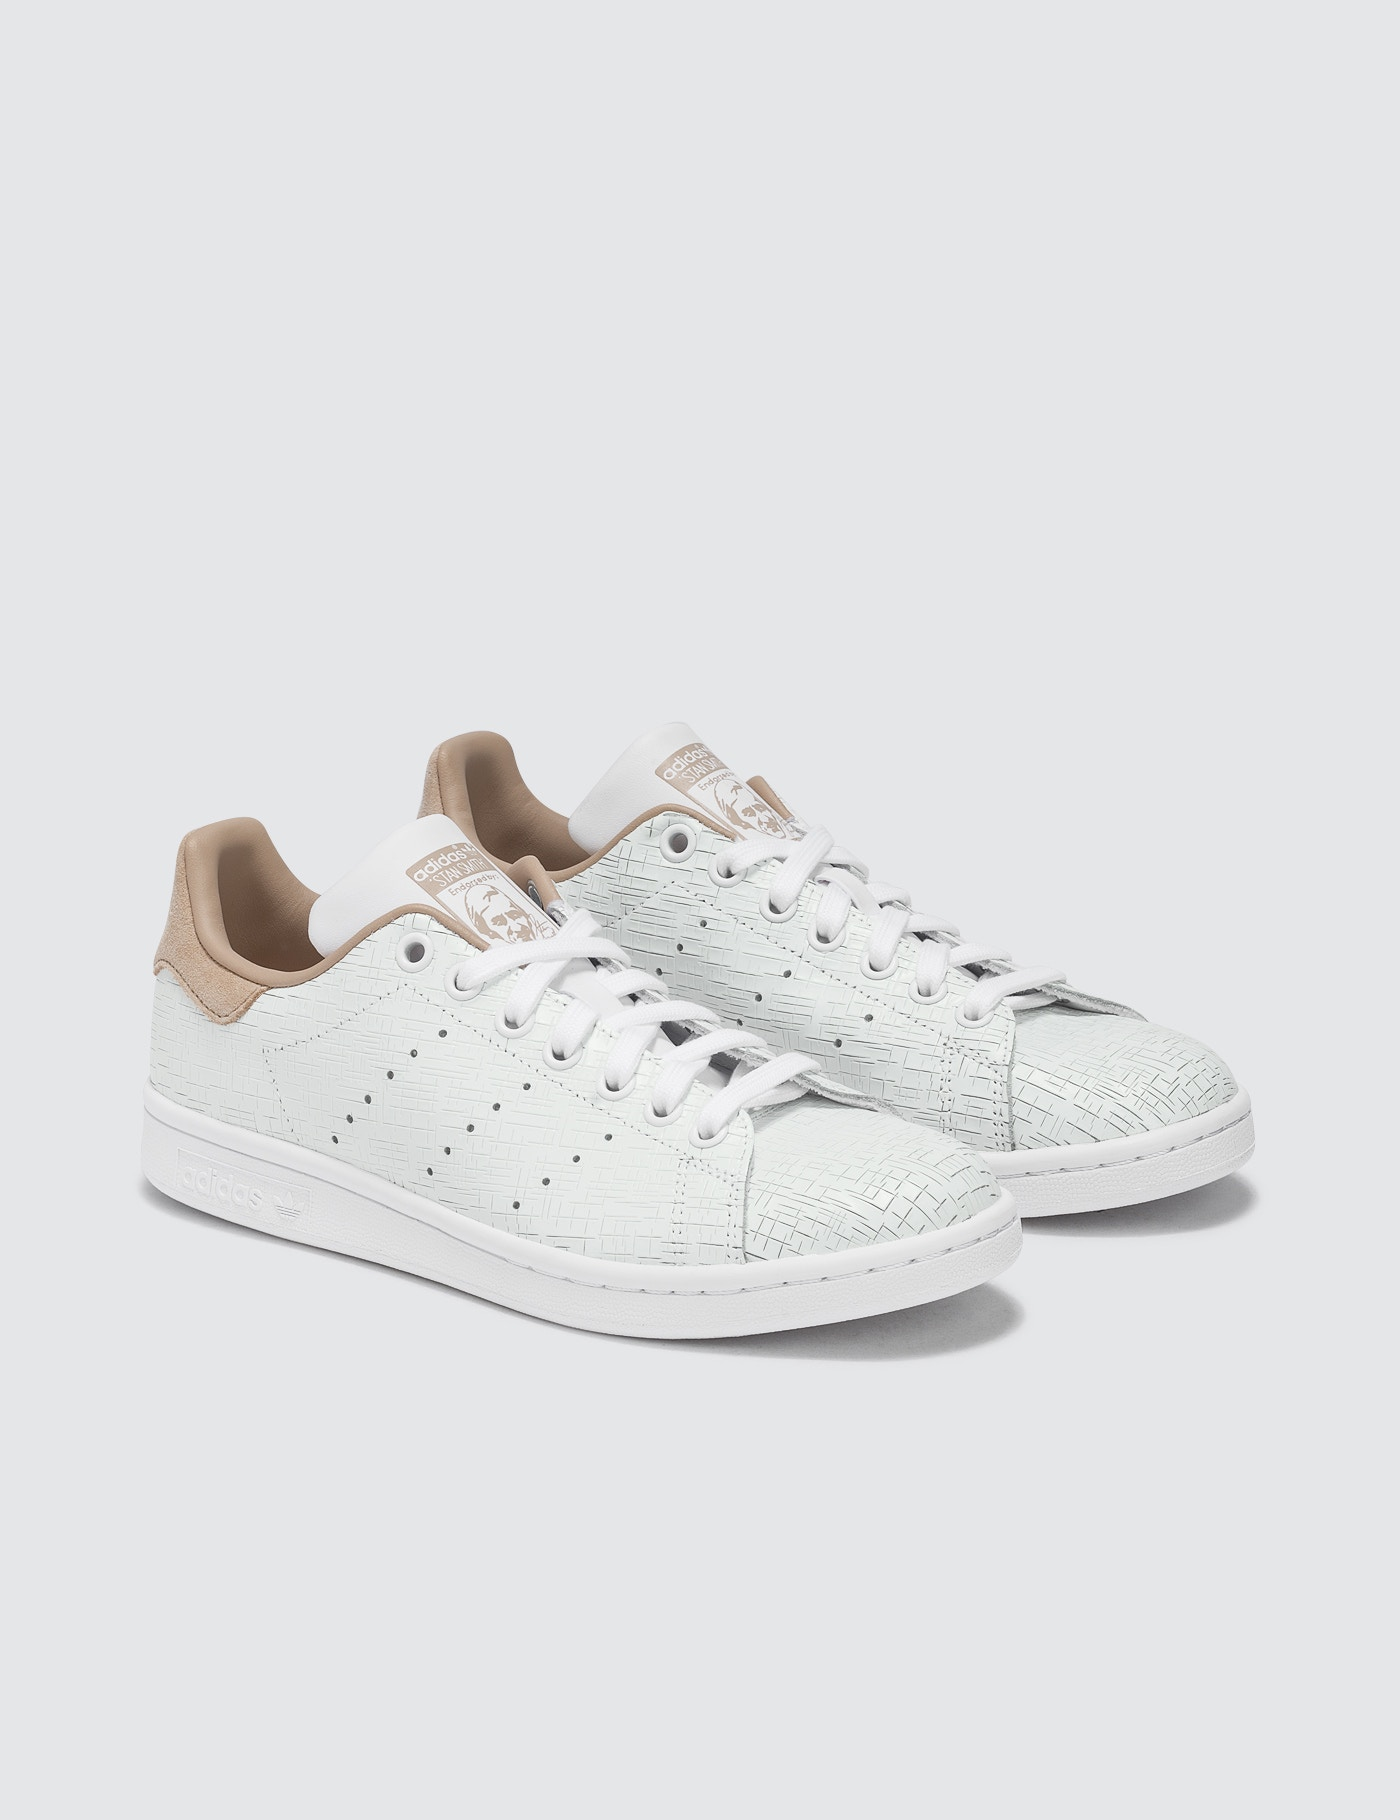 5236d4c6f5 Buy Original Adidas Originals Stan Smith W at Indonesia | BOBOBOBO